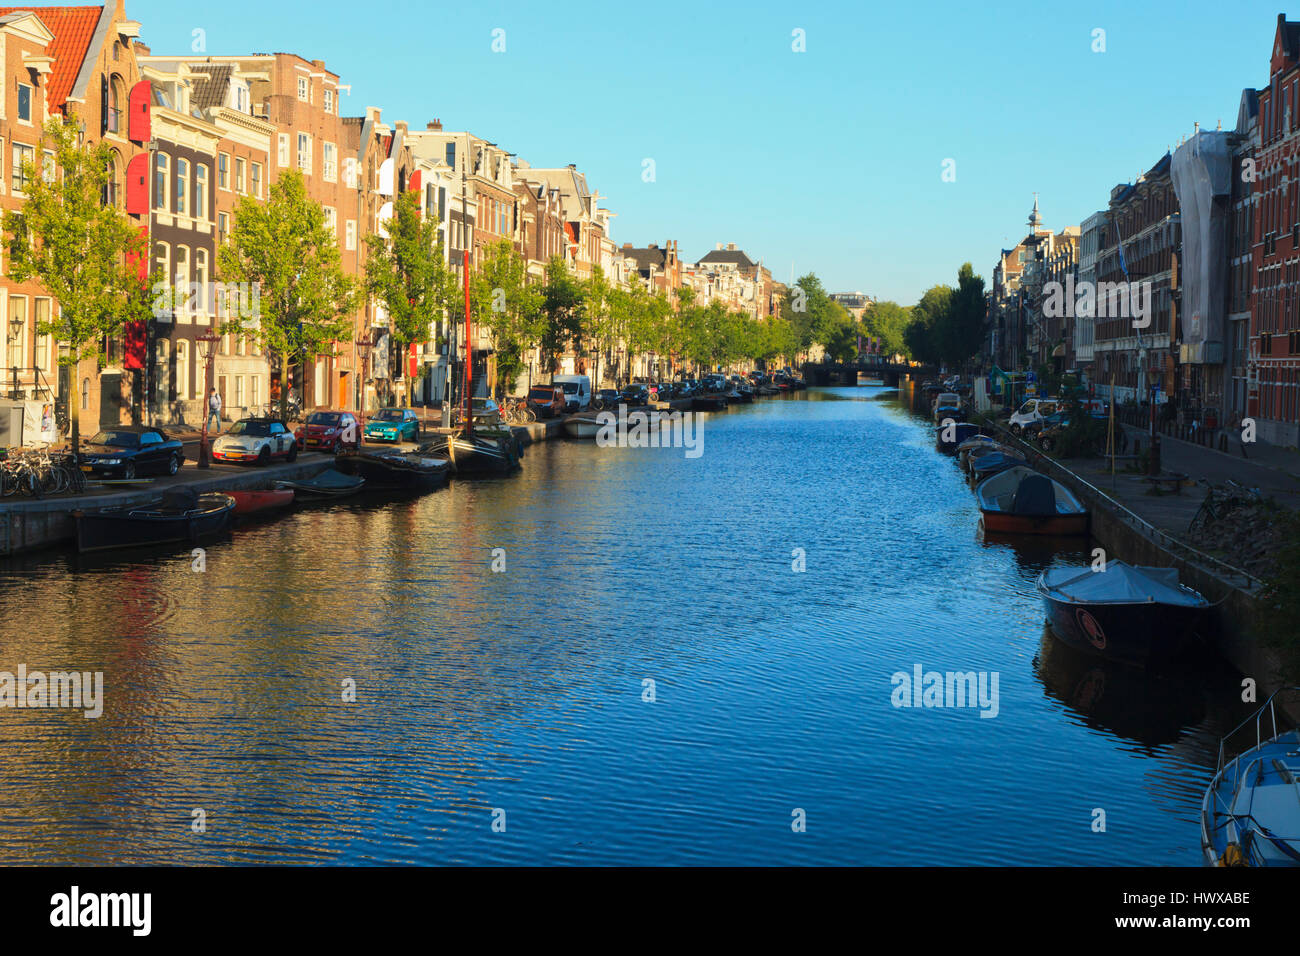 View across the Prinsengracht canal in the centre of Amsterdam, Holland - Stock Image